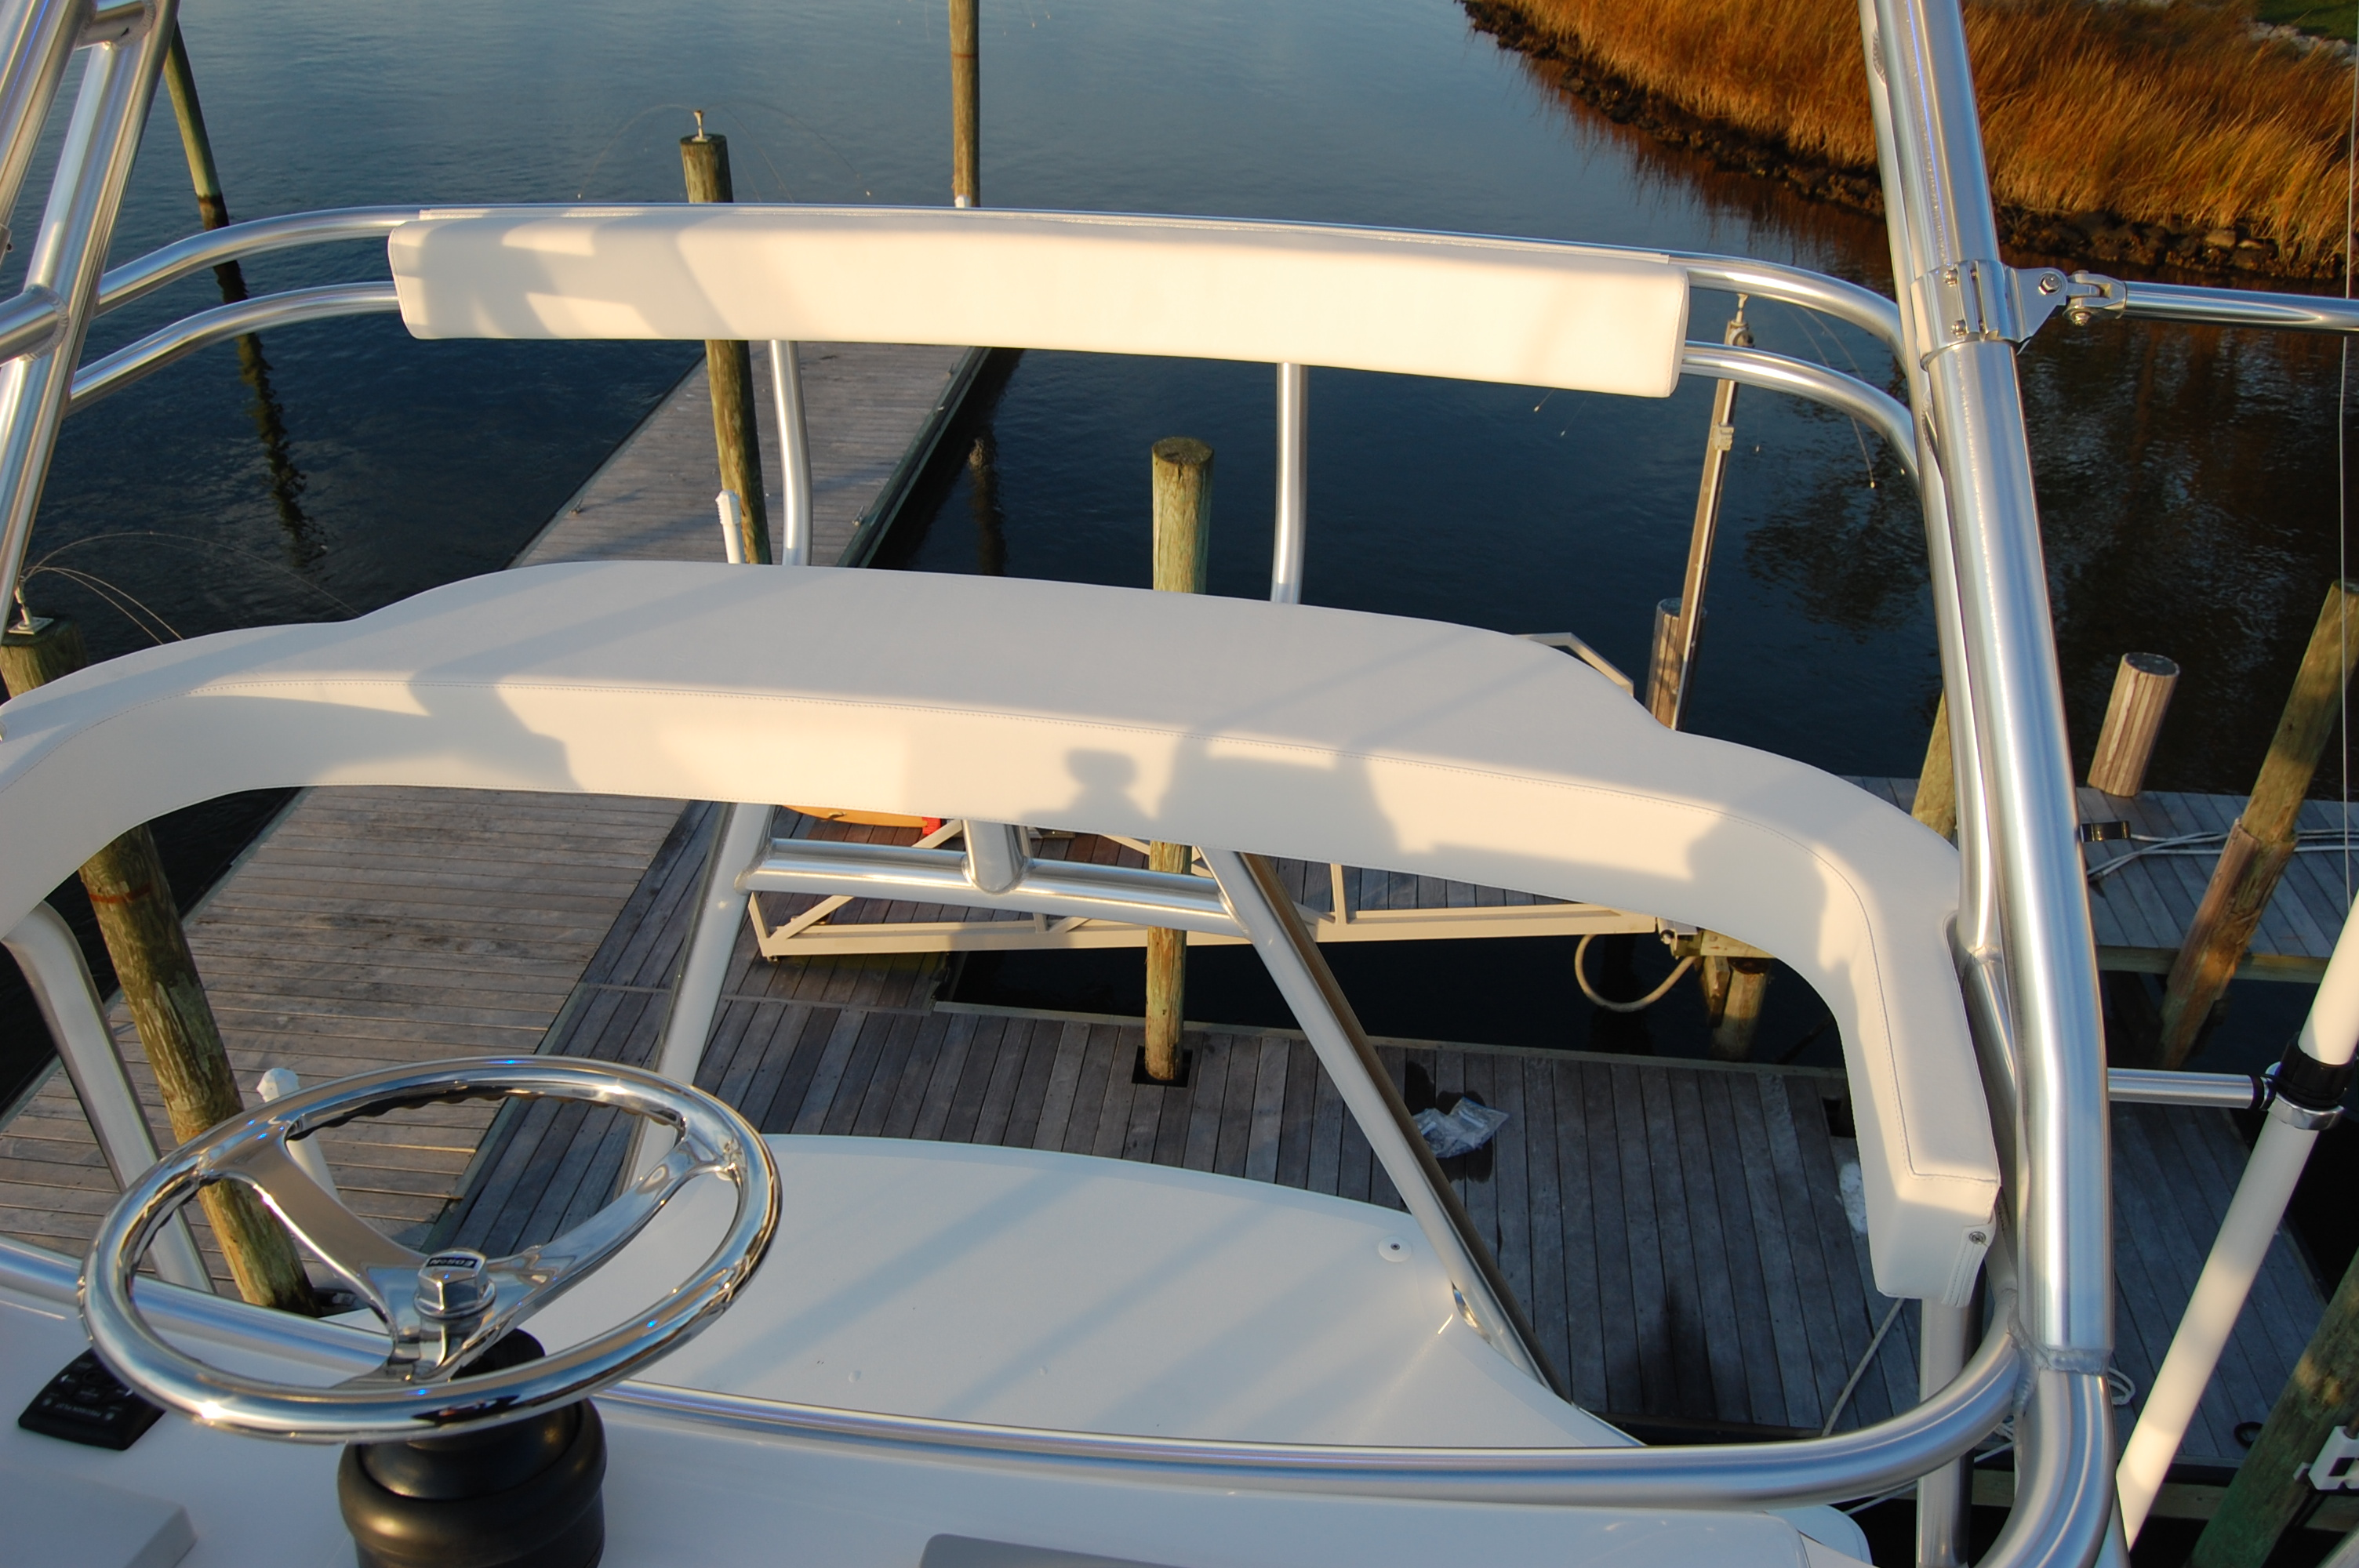 2015 Viking 42 Open, cushions on tower